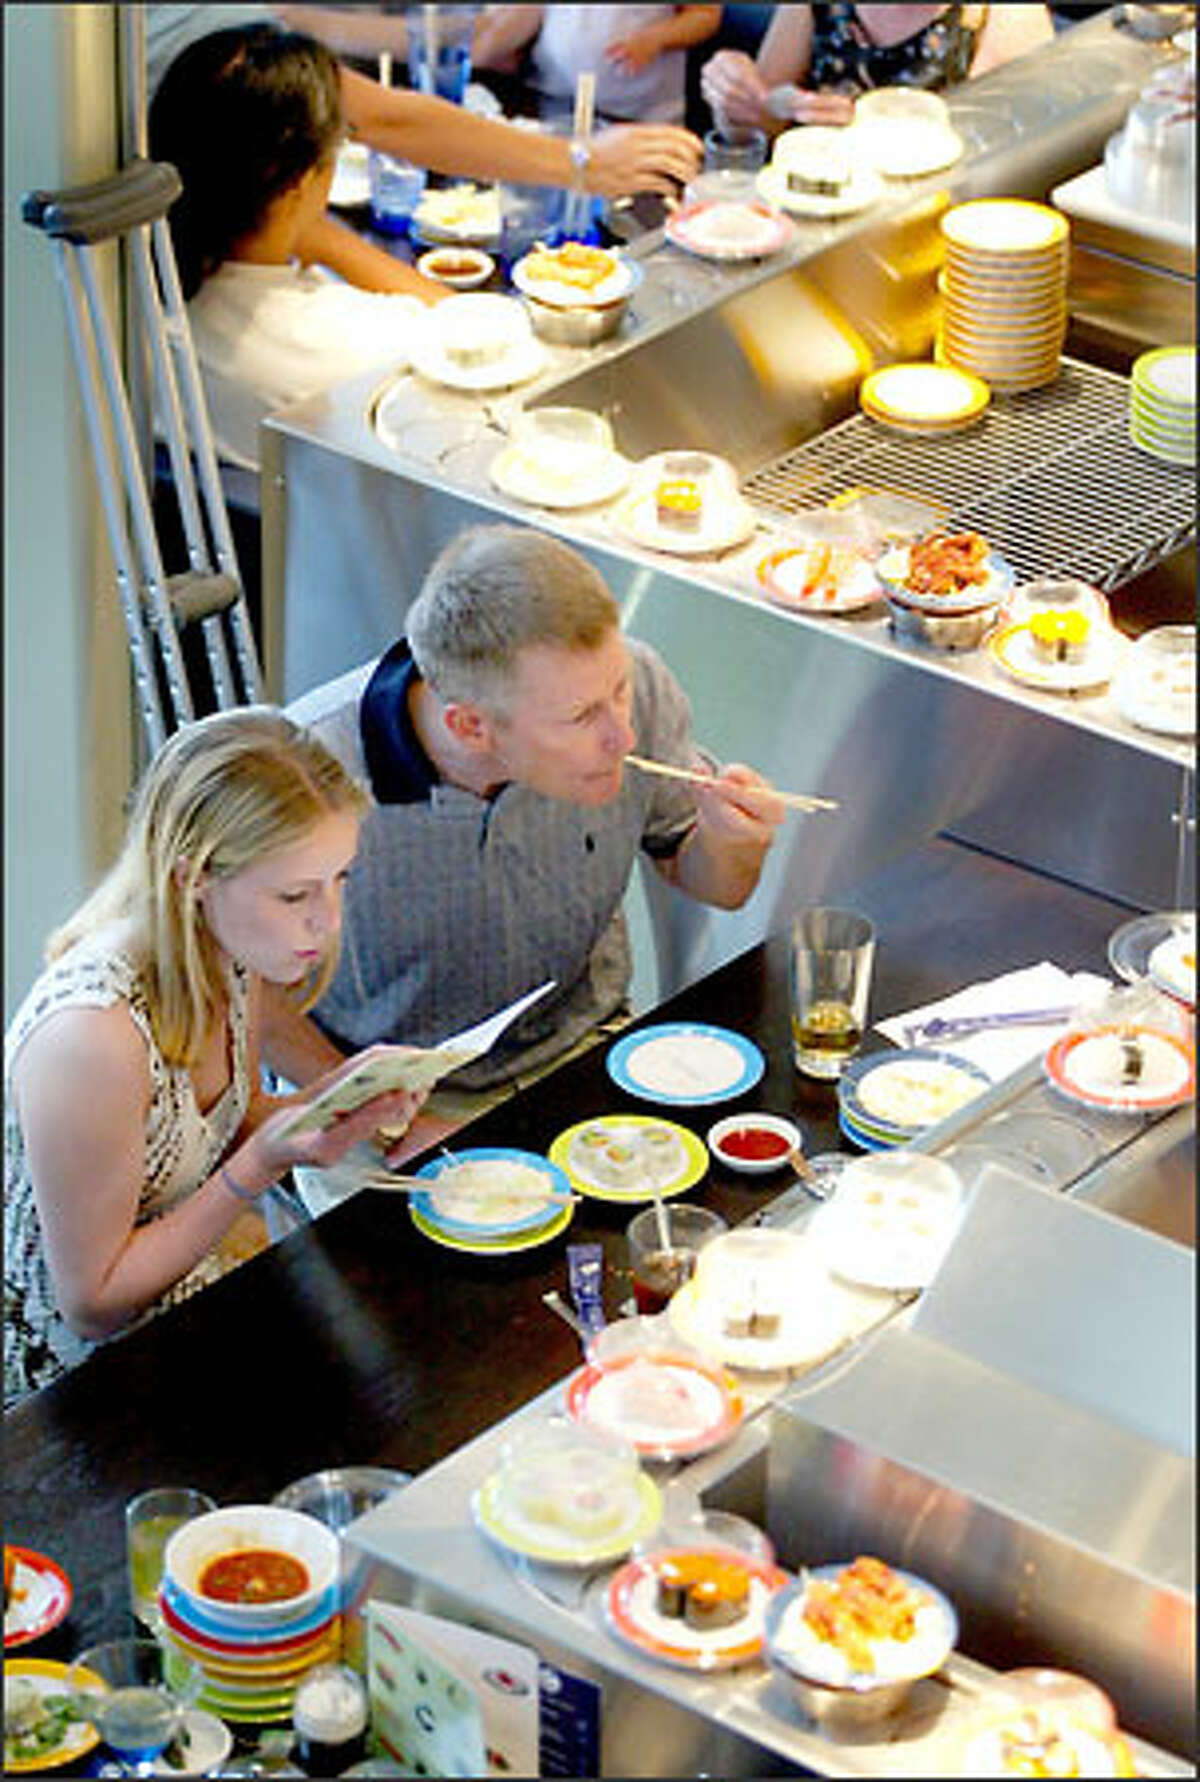 Carin Berg tries to figure out what she is eating while her father, Stephen Berg, just eats it.